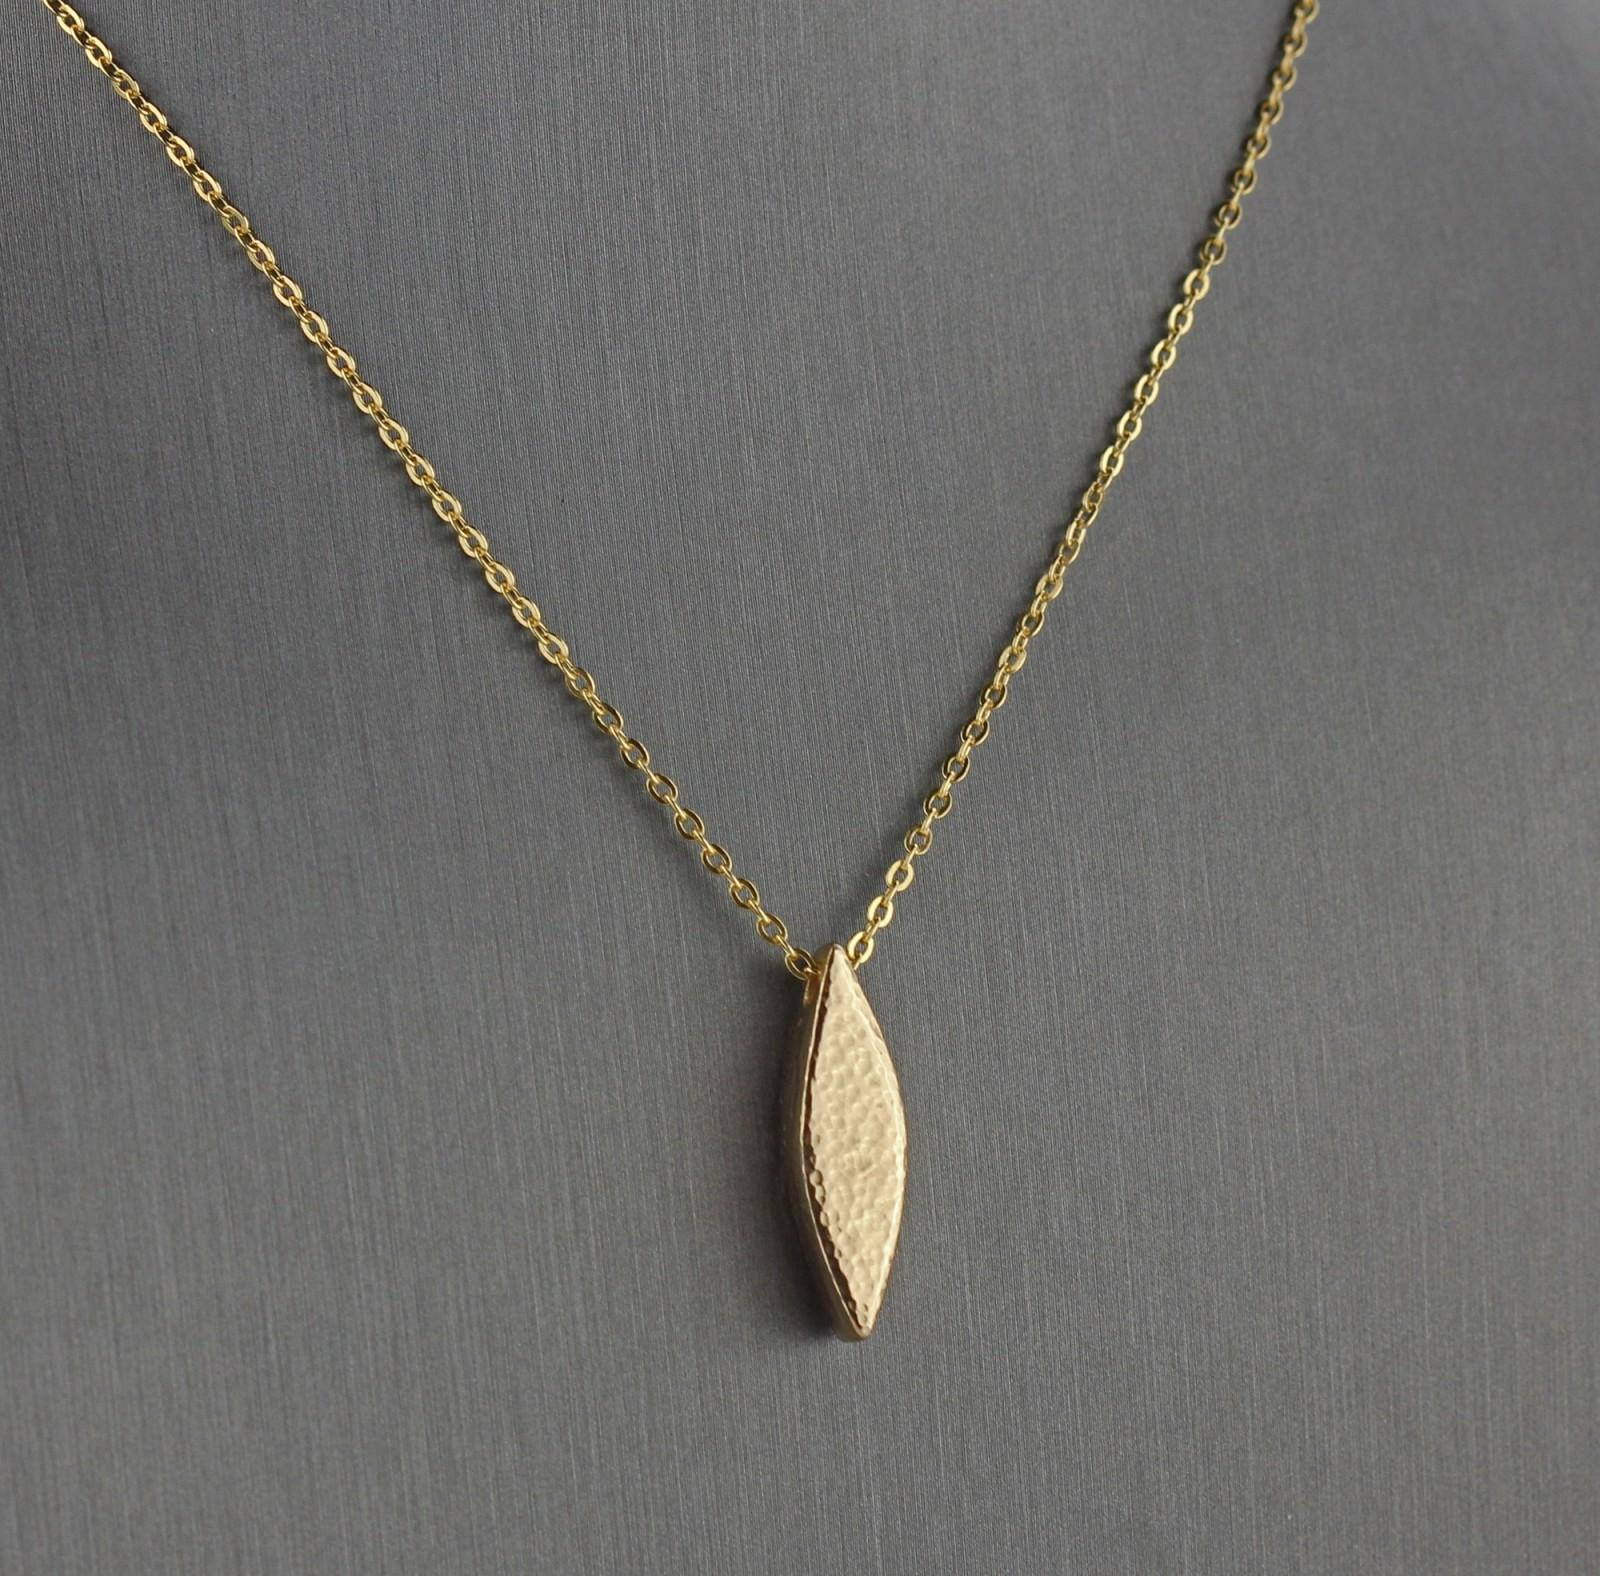 Modern Gold Petal Necklace Minimalist